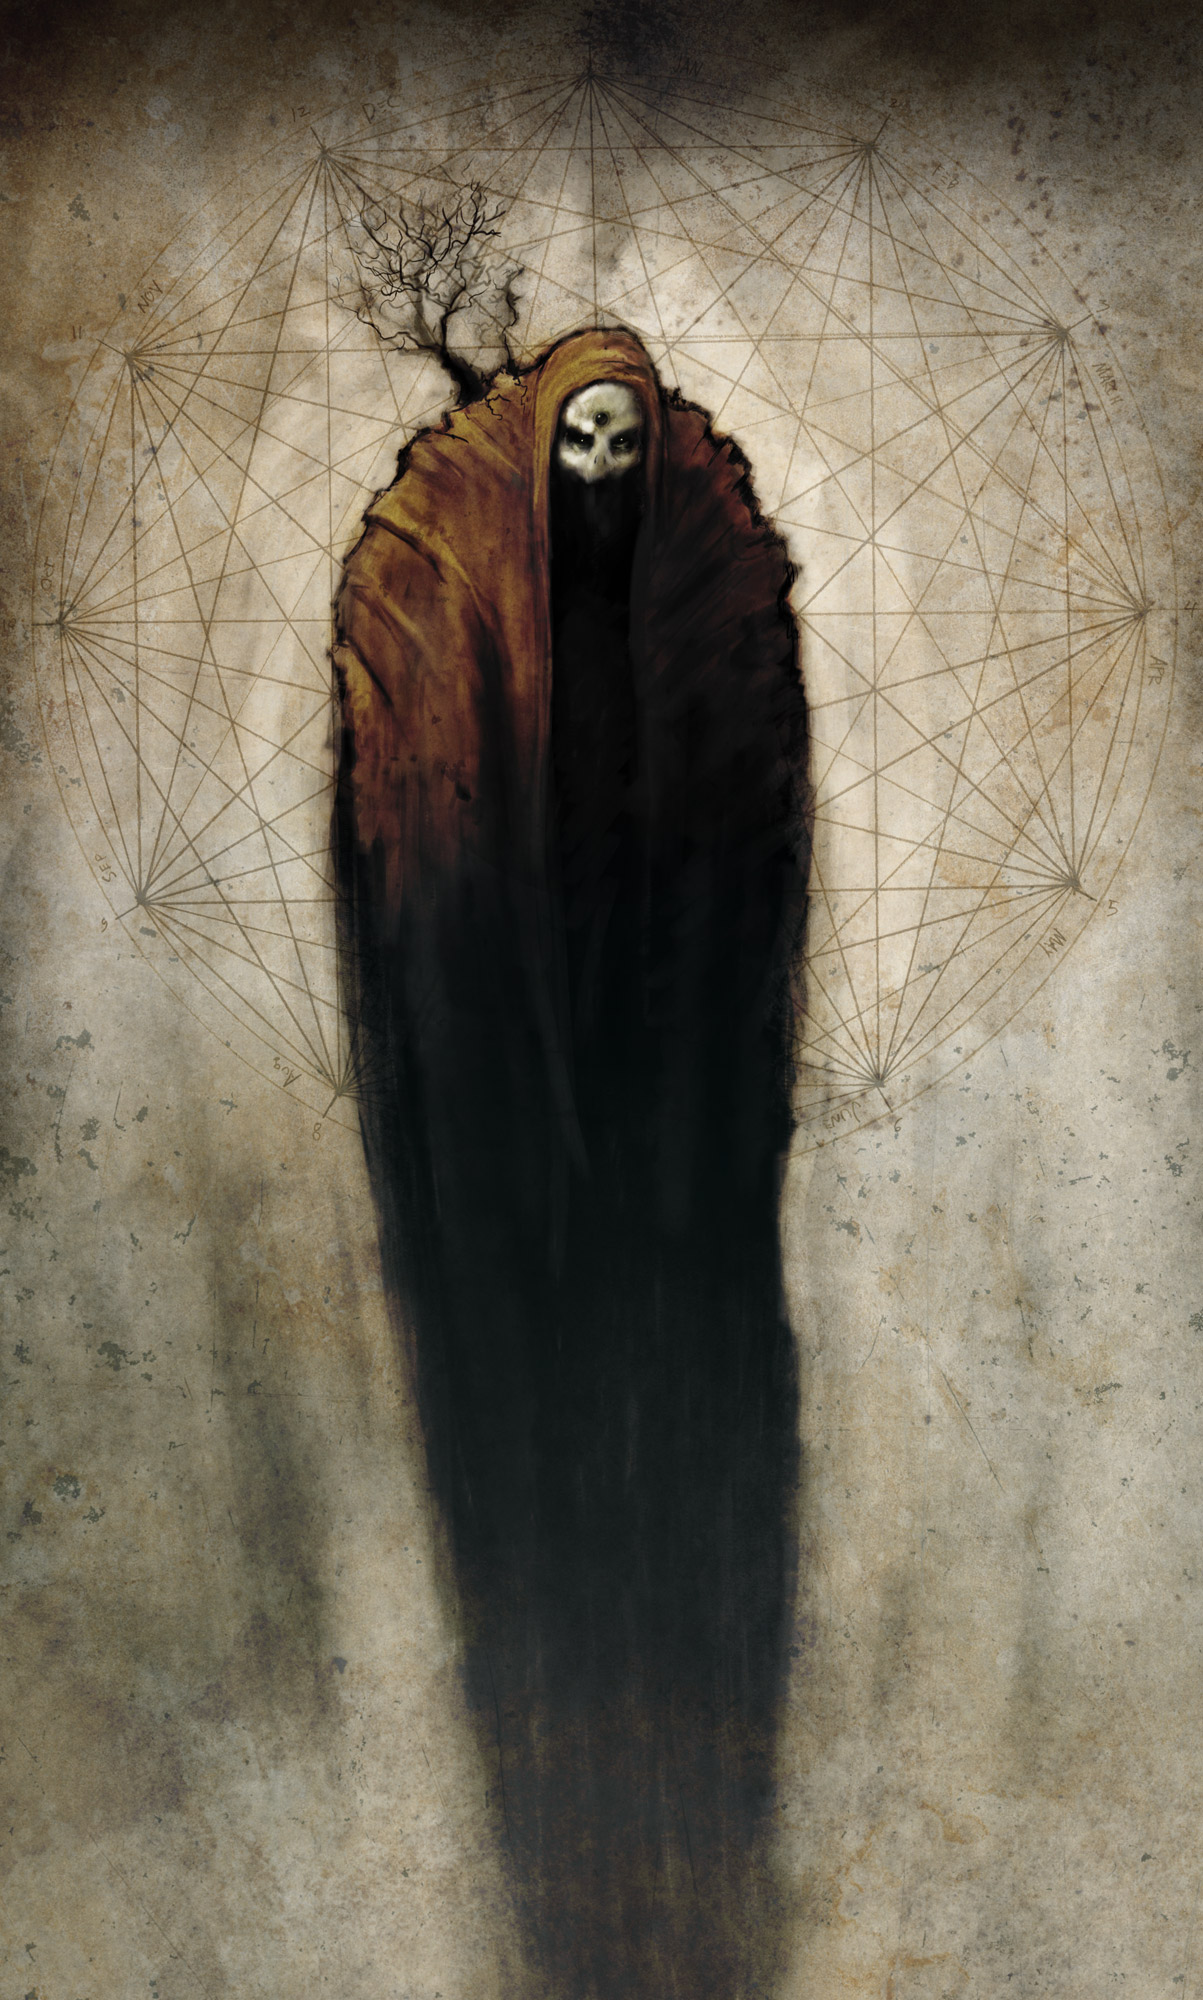 Speed Painting 0ct 20 09 by menton3